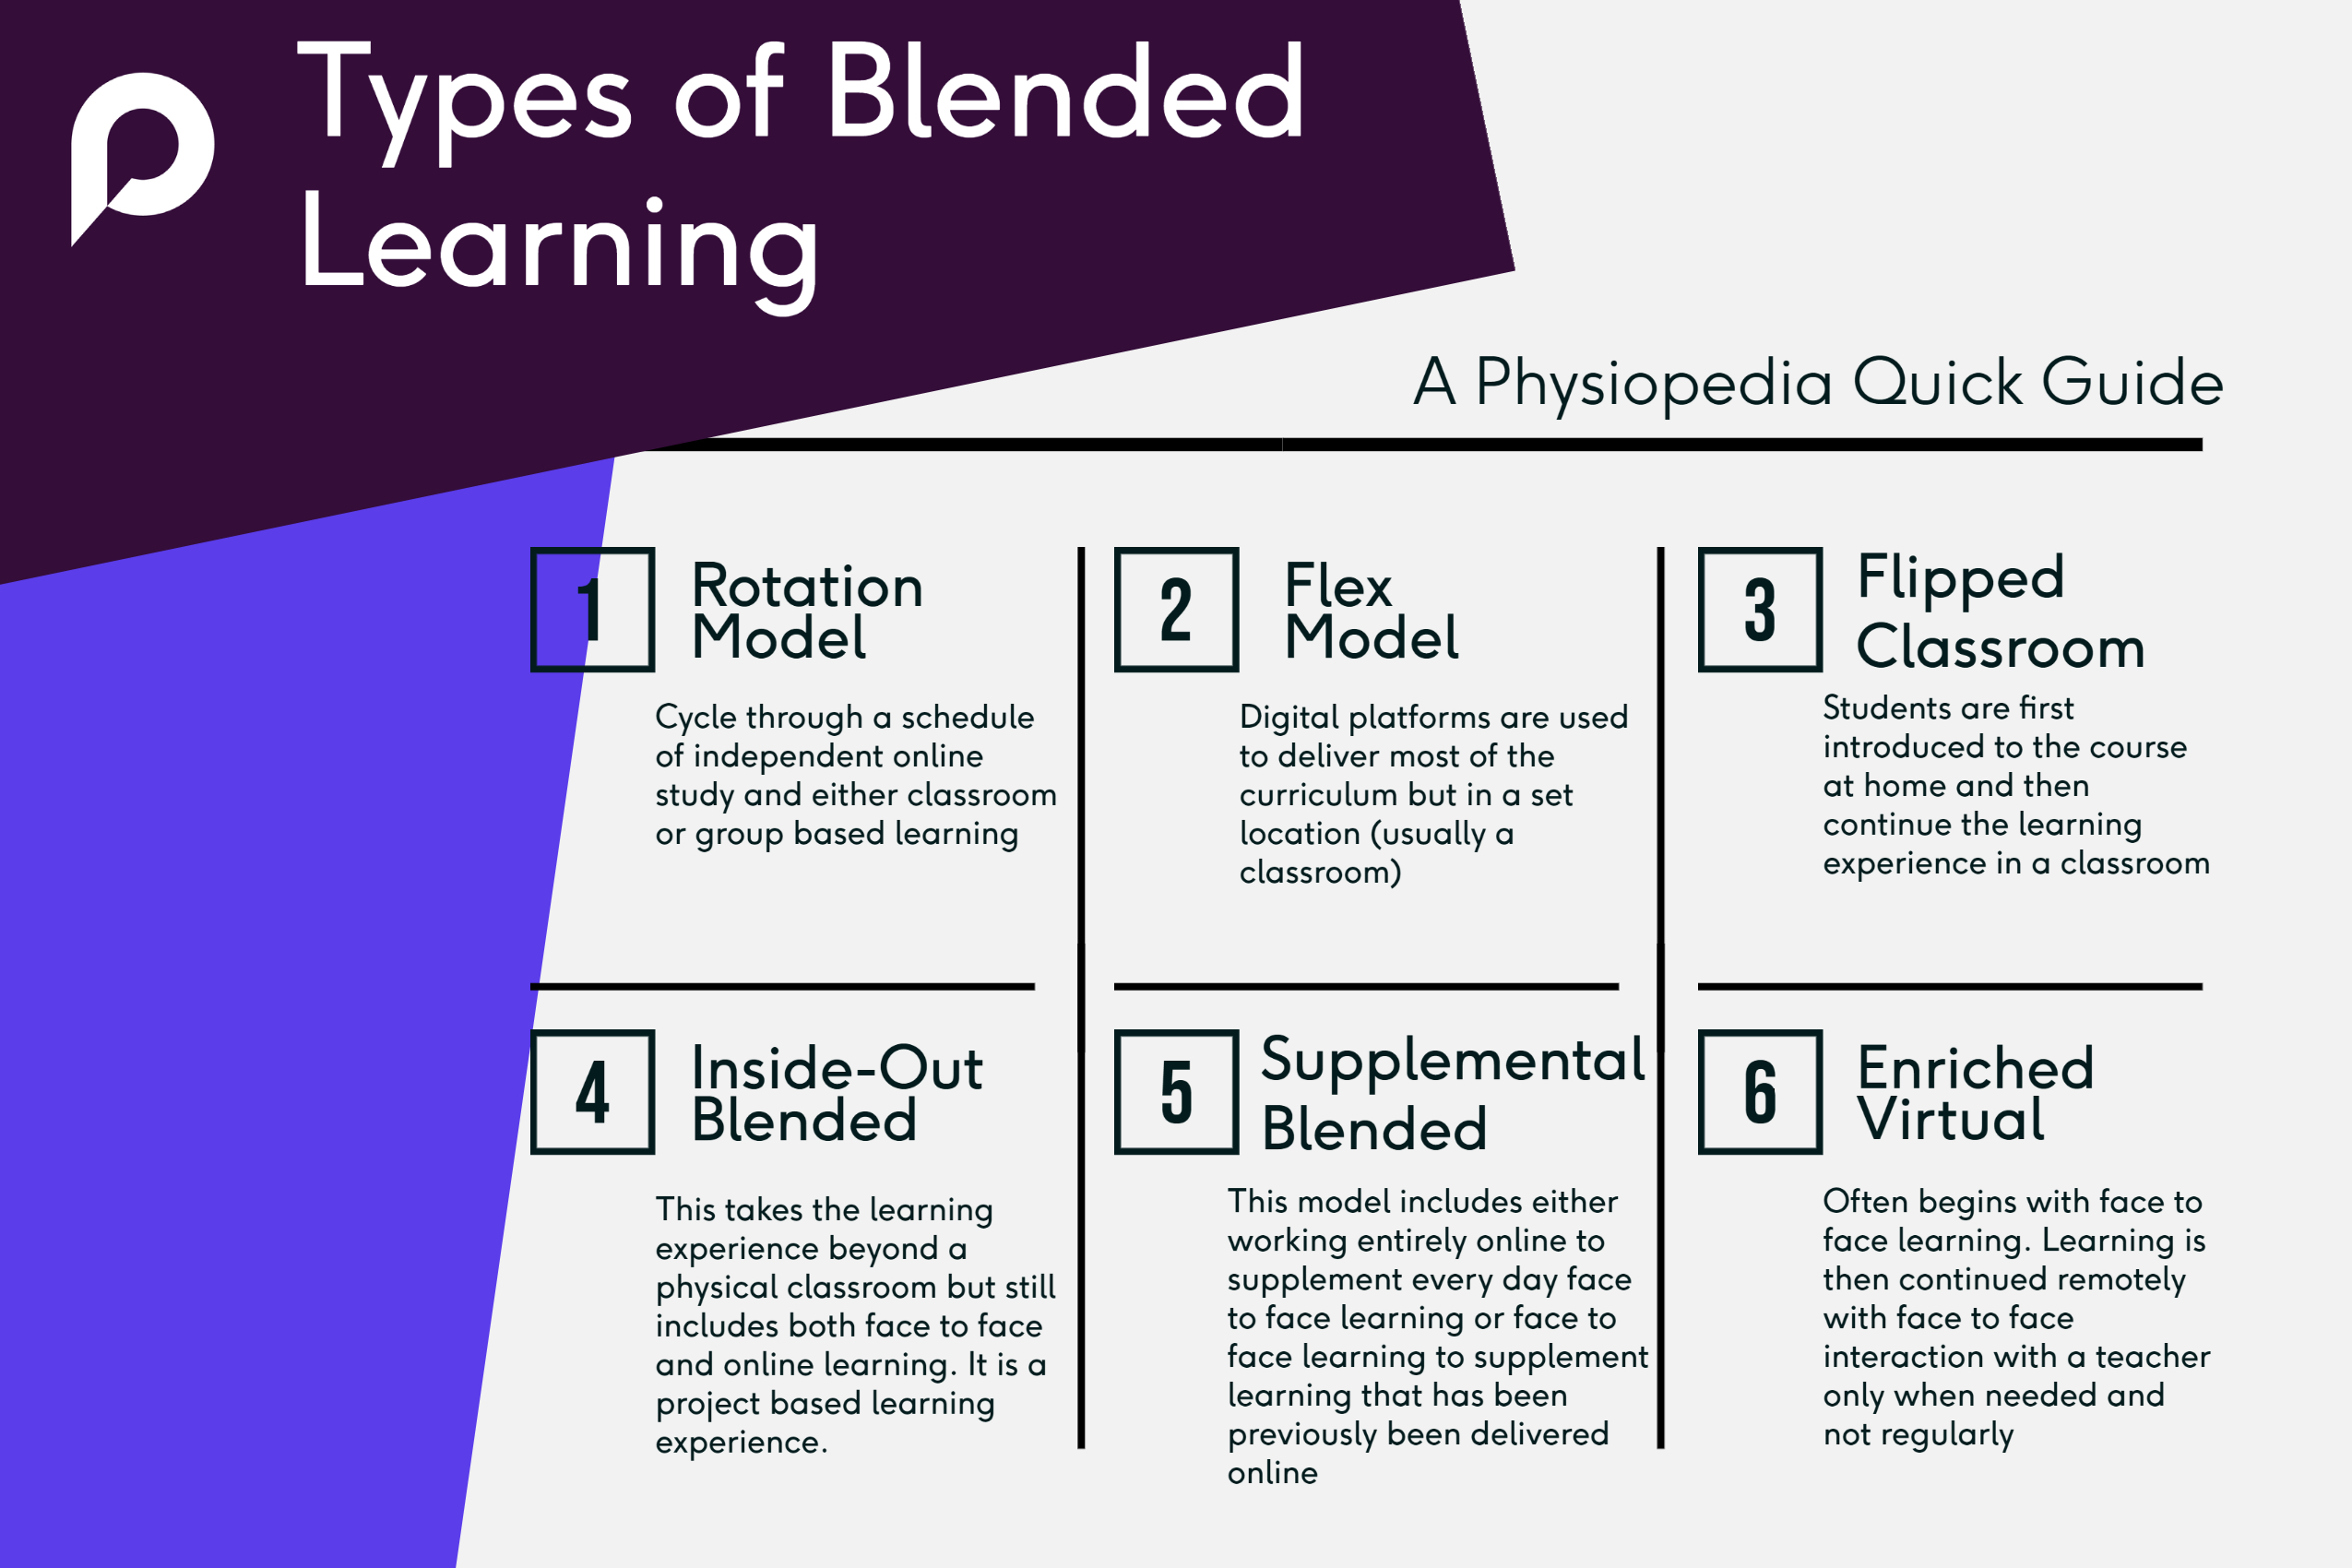 There are many different types of blended learning but this infographic illustrates six different types. Rotation, flex, flipped classroom, inside-out, supplemental and enriched virtual.